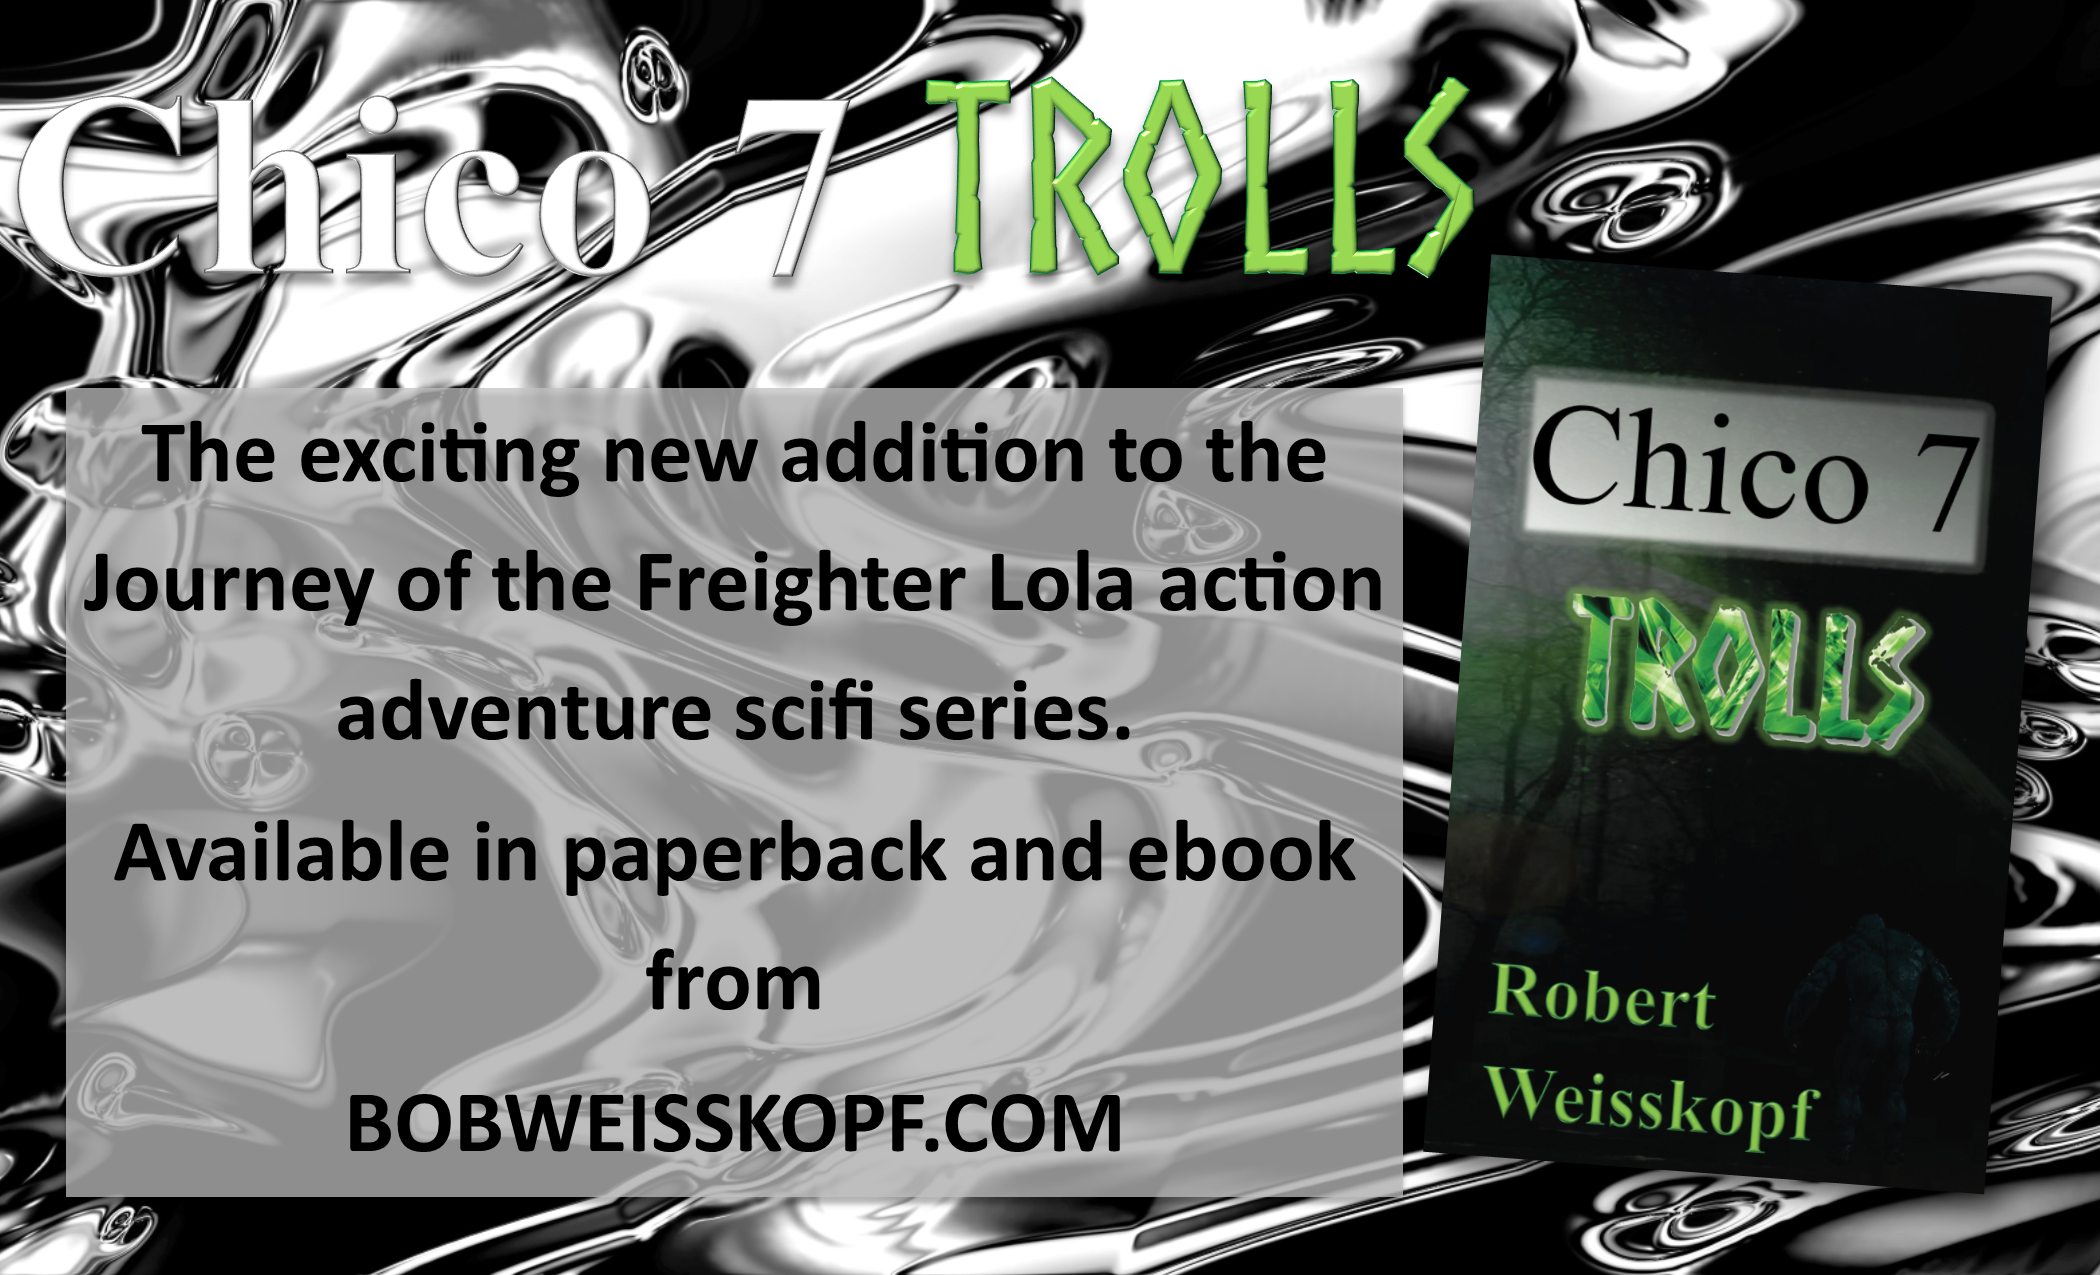 Chico 7 TROLLS , The newest novel in the Journey of the Freighter Lola adventure sci fi series from Robert Weisskopf.  You can find it and the entire series along with samples of each of his books from Barnes & Noble, Amazon.com, or Createspace at https://bobweisskopf.com/shop-now/